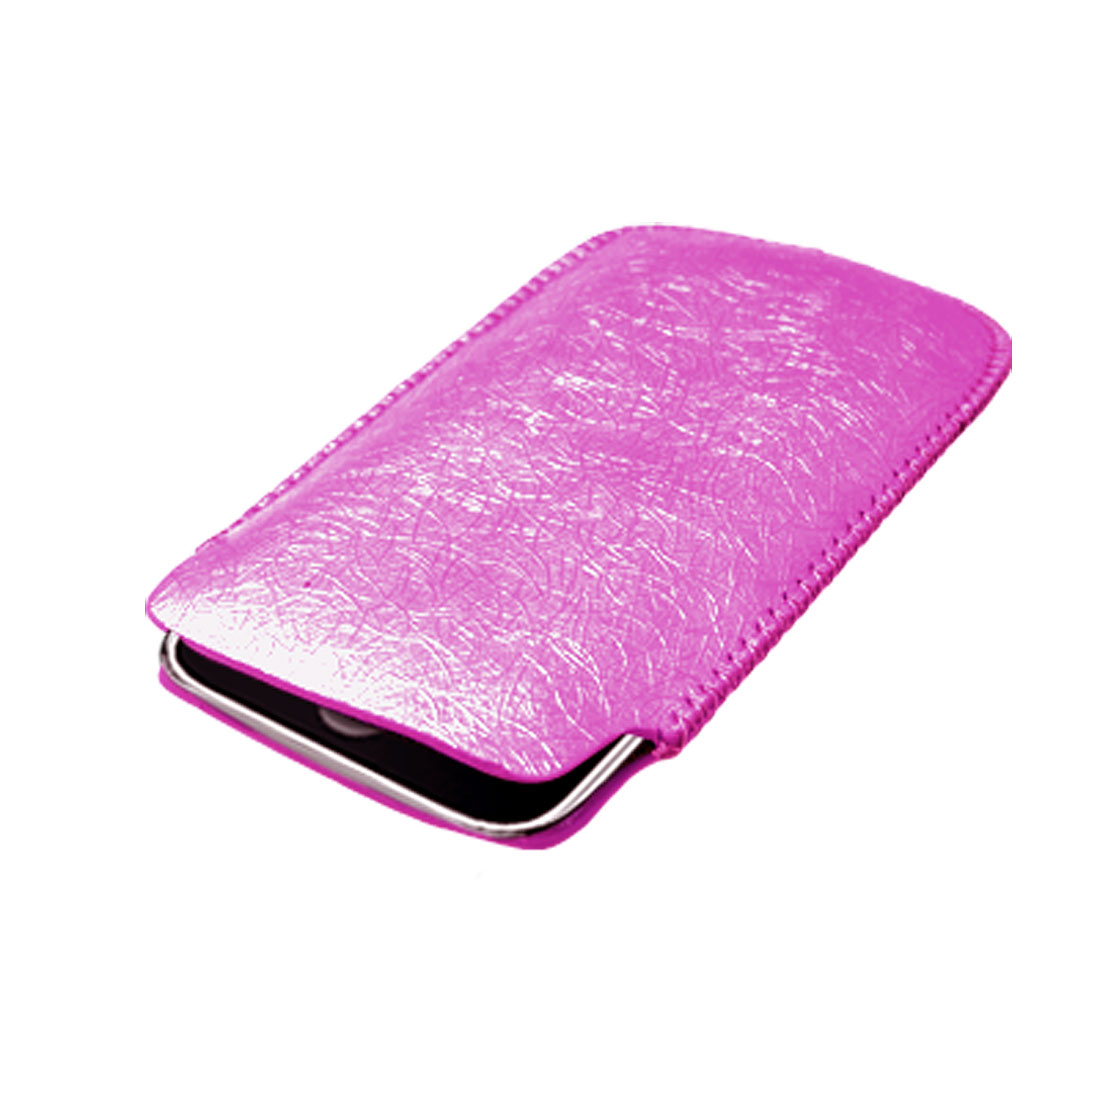 Purple Portable Faux Leather Sleeve Case for Apple iPhone 1st Generation non 3G